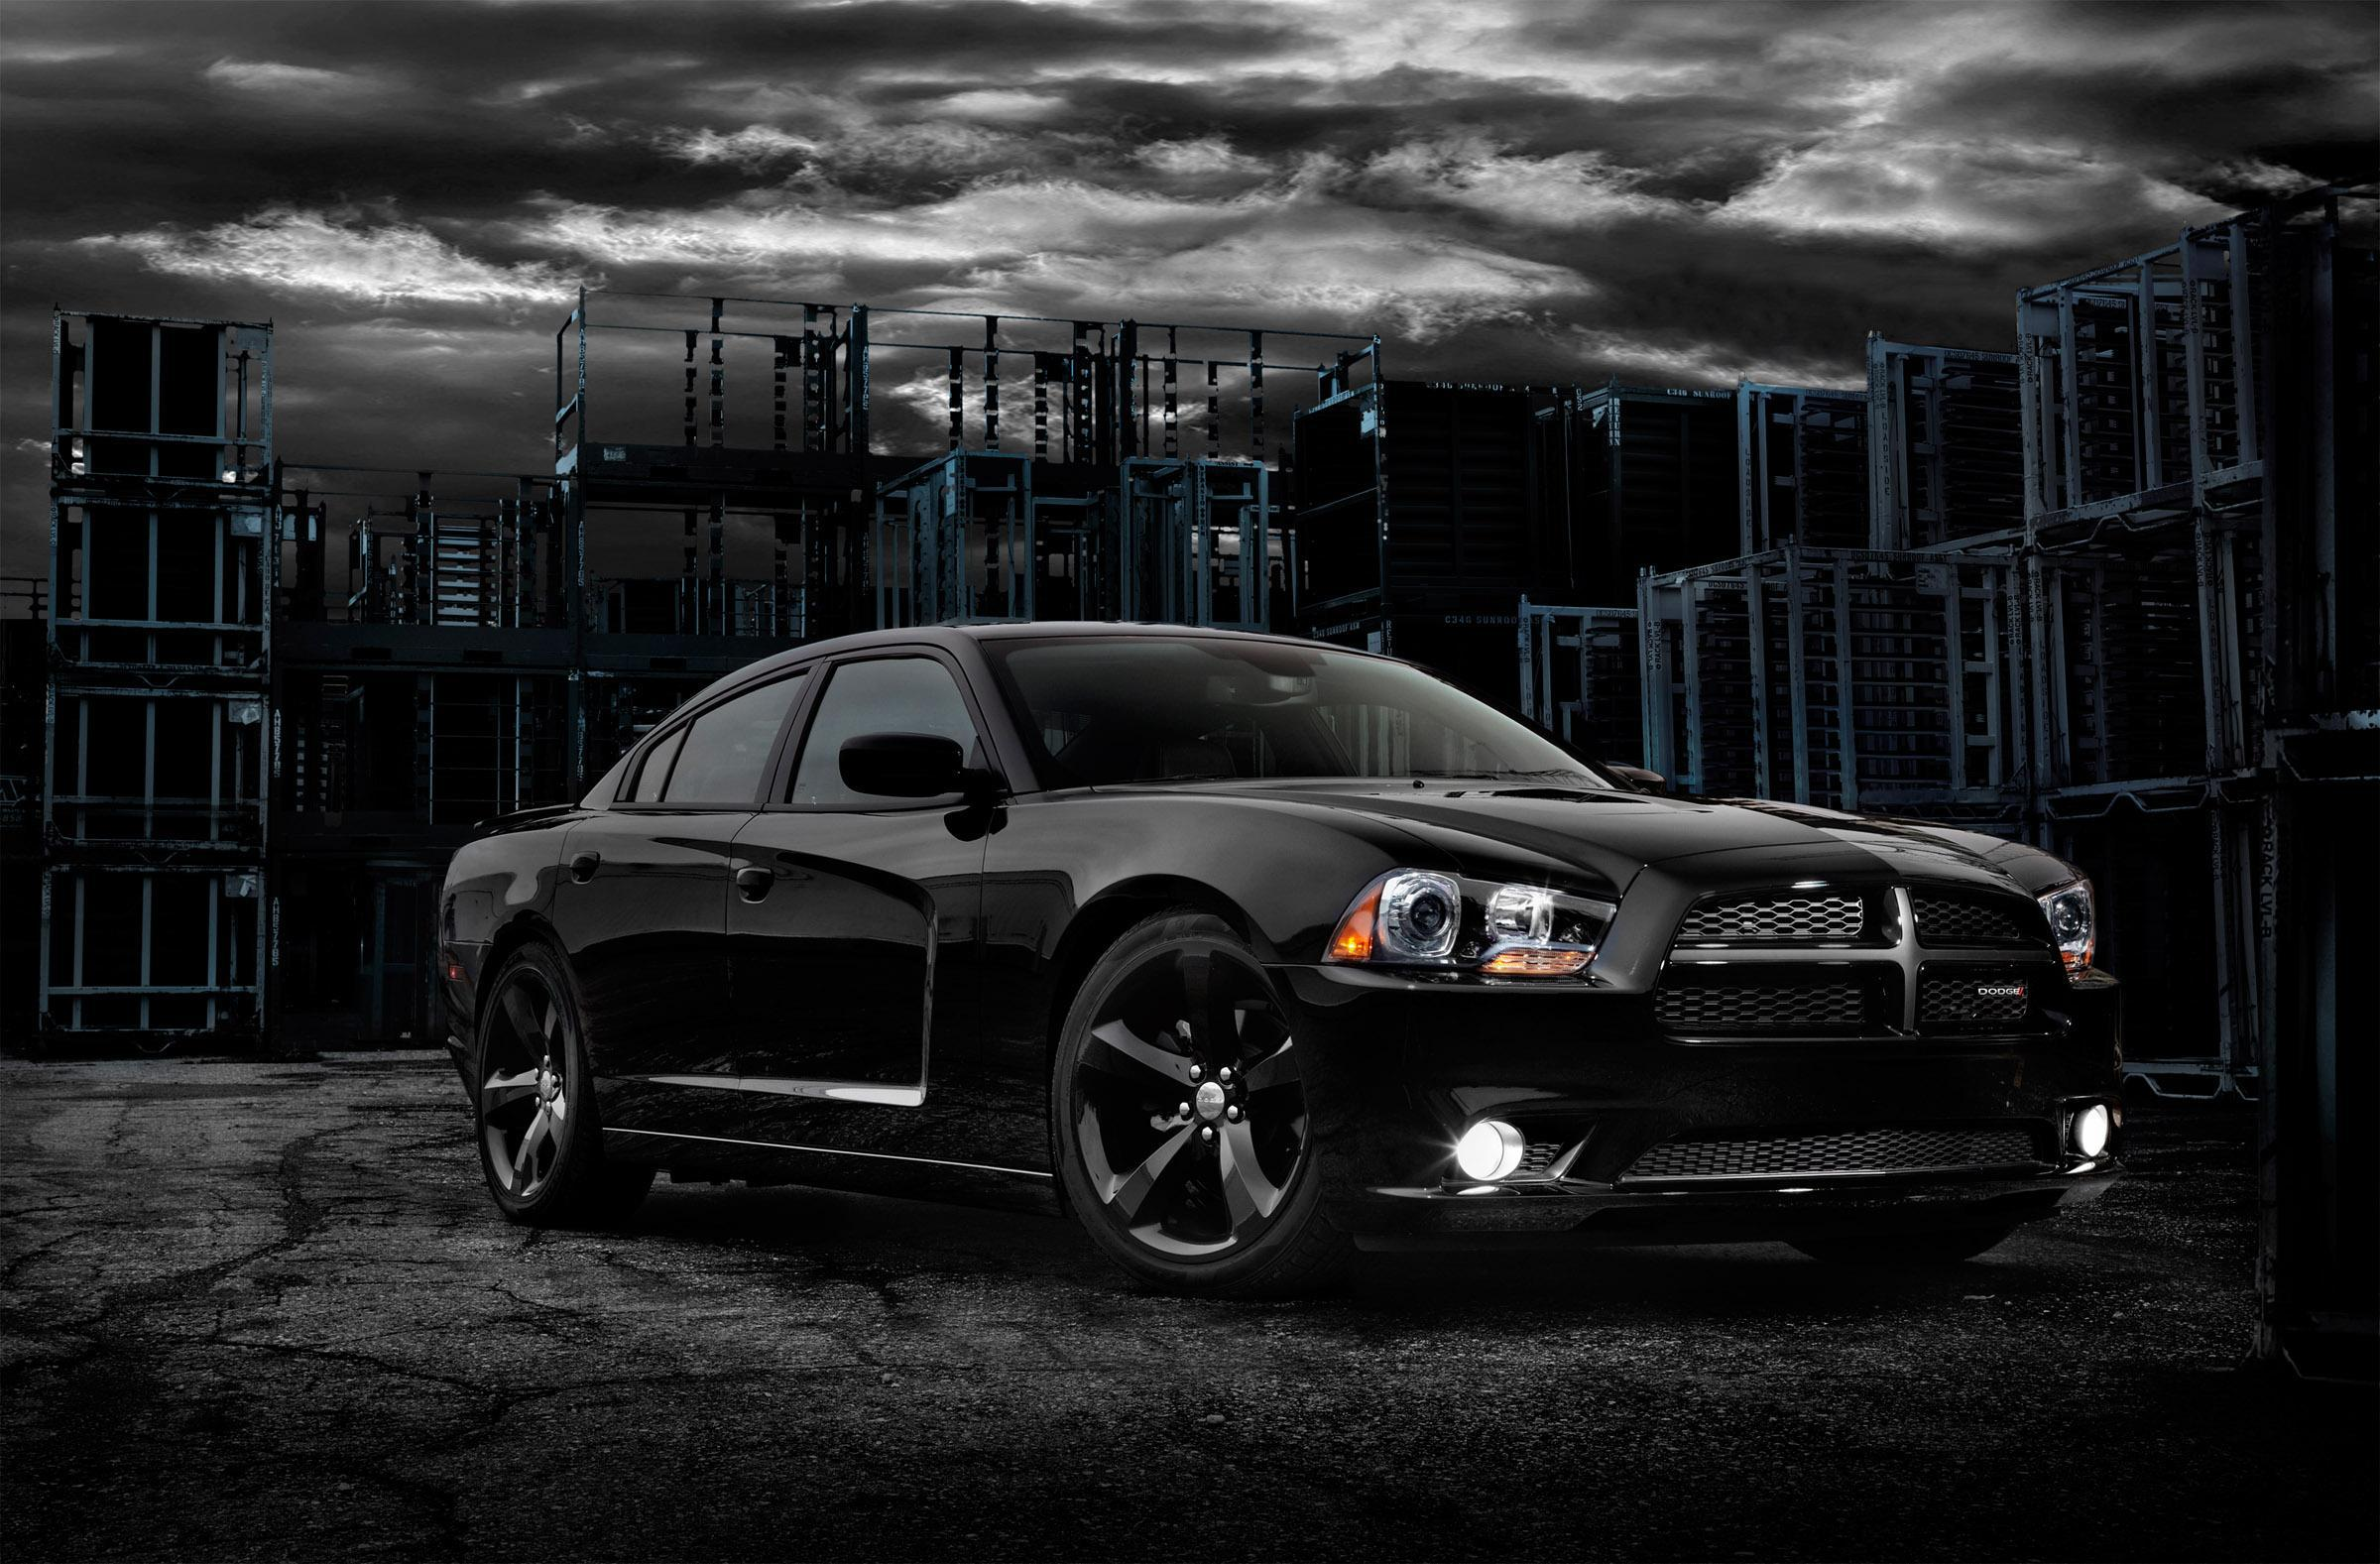 2012 Dodge Charger Blacktop Hd Desktop Wallpaper Widescreen High